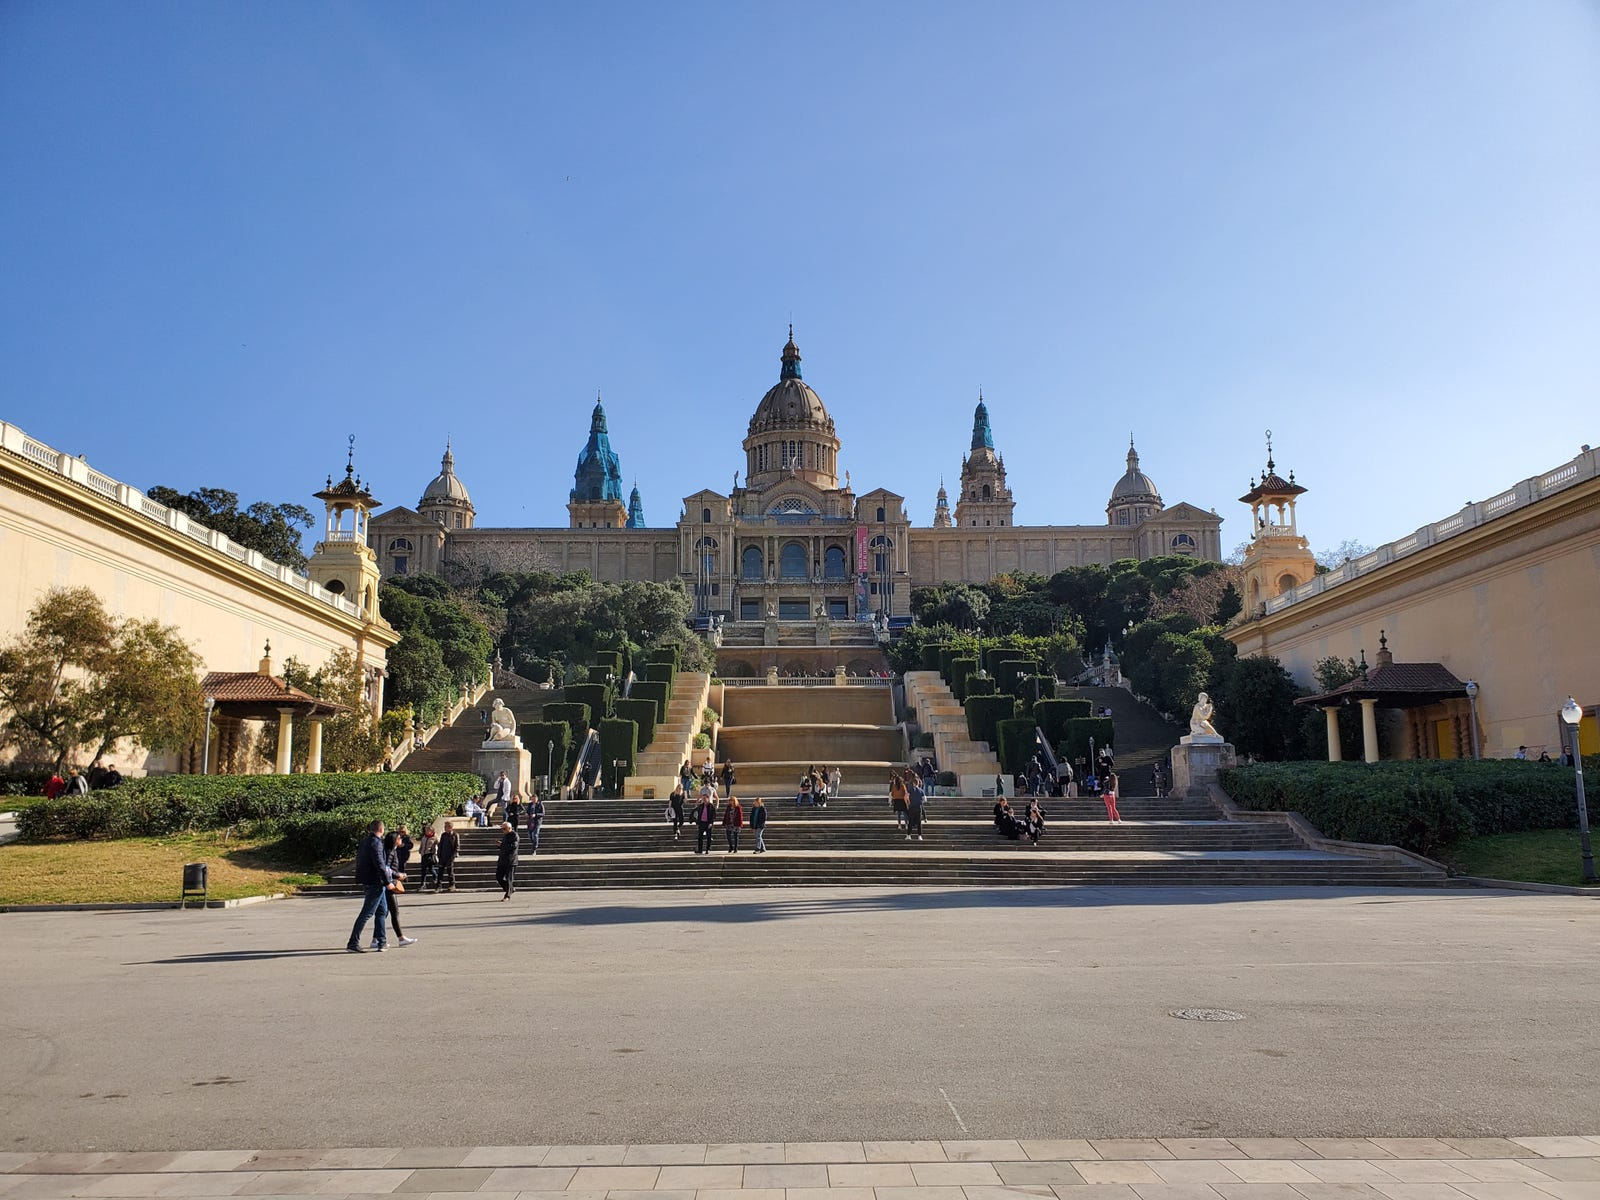 A shot of the MNAC in Barcelona with the S10's main camera.